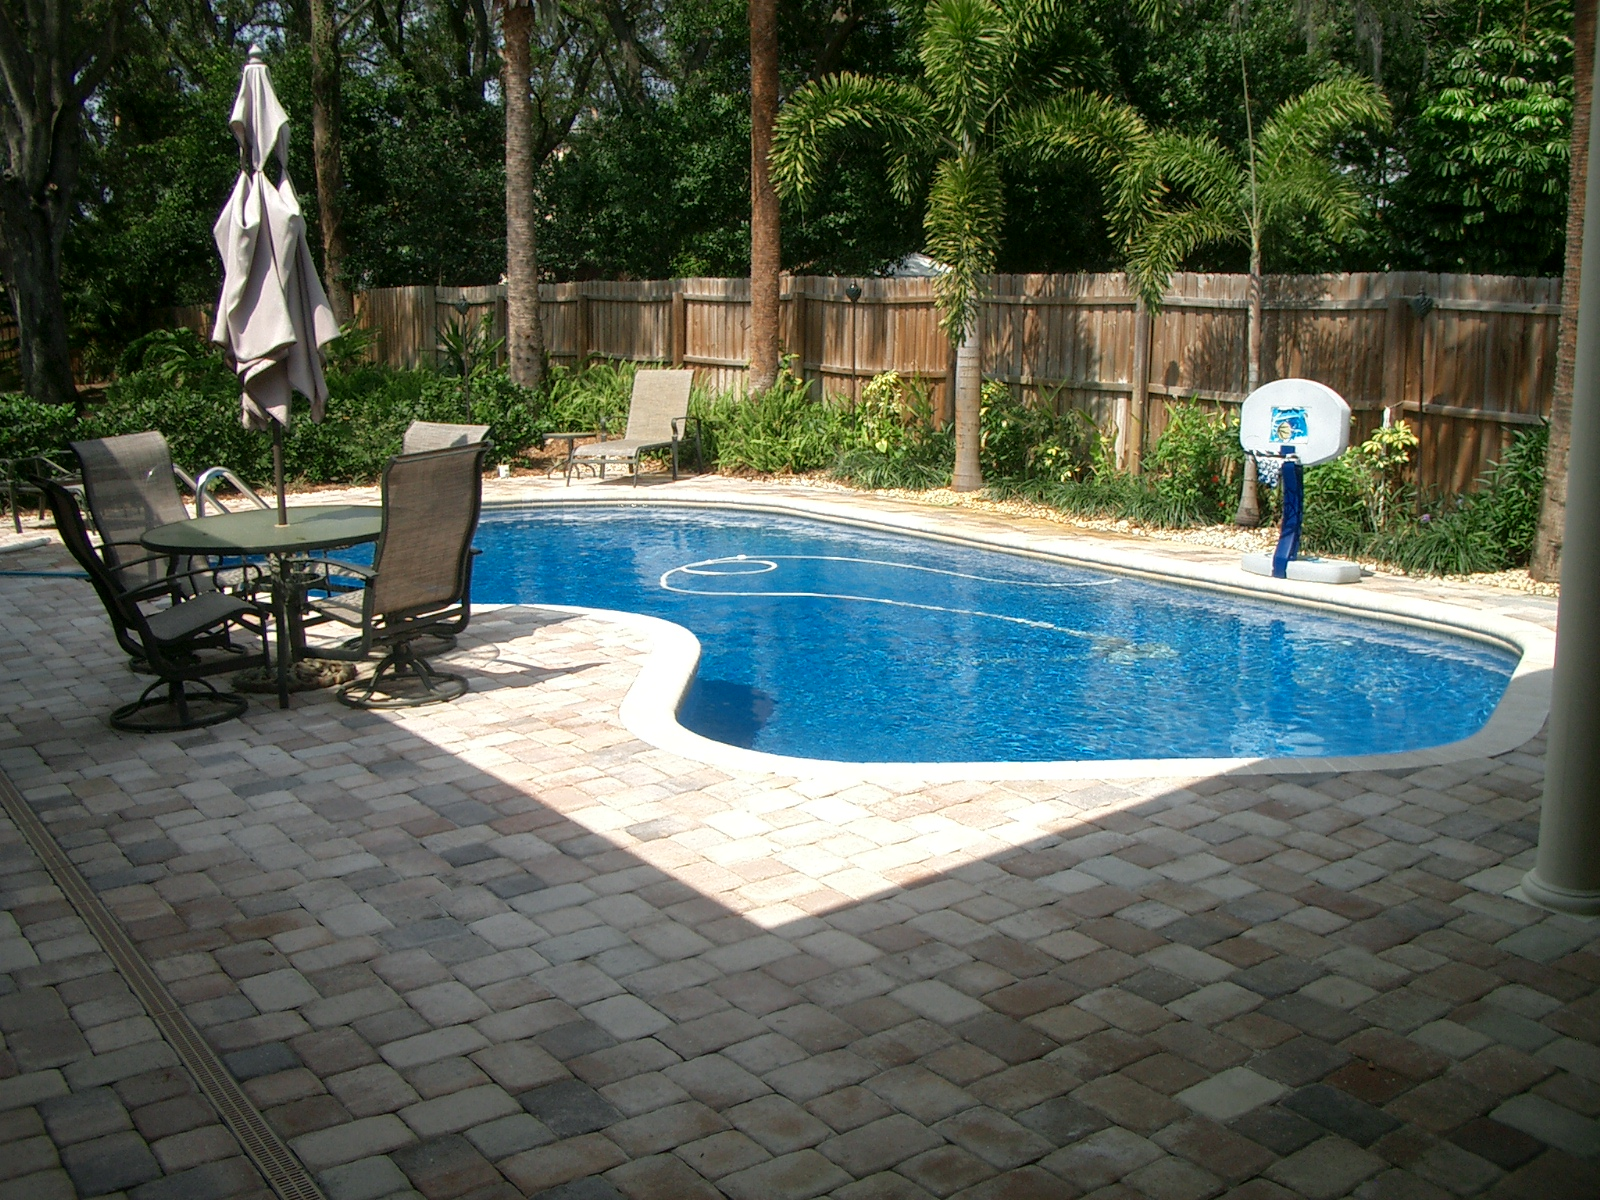 backyard ideas with pool photo - 1